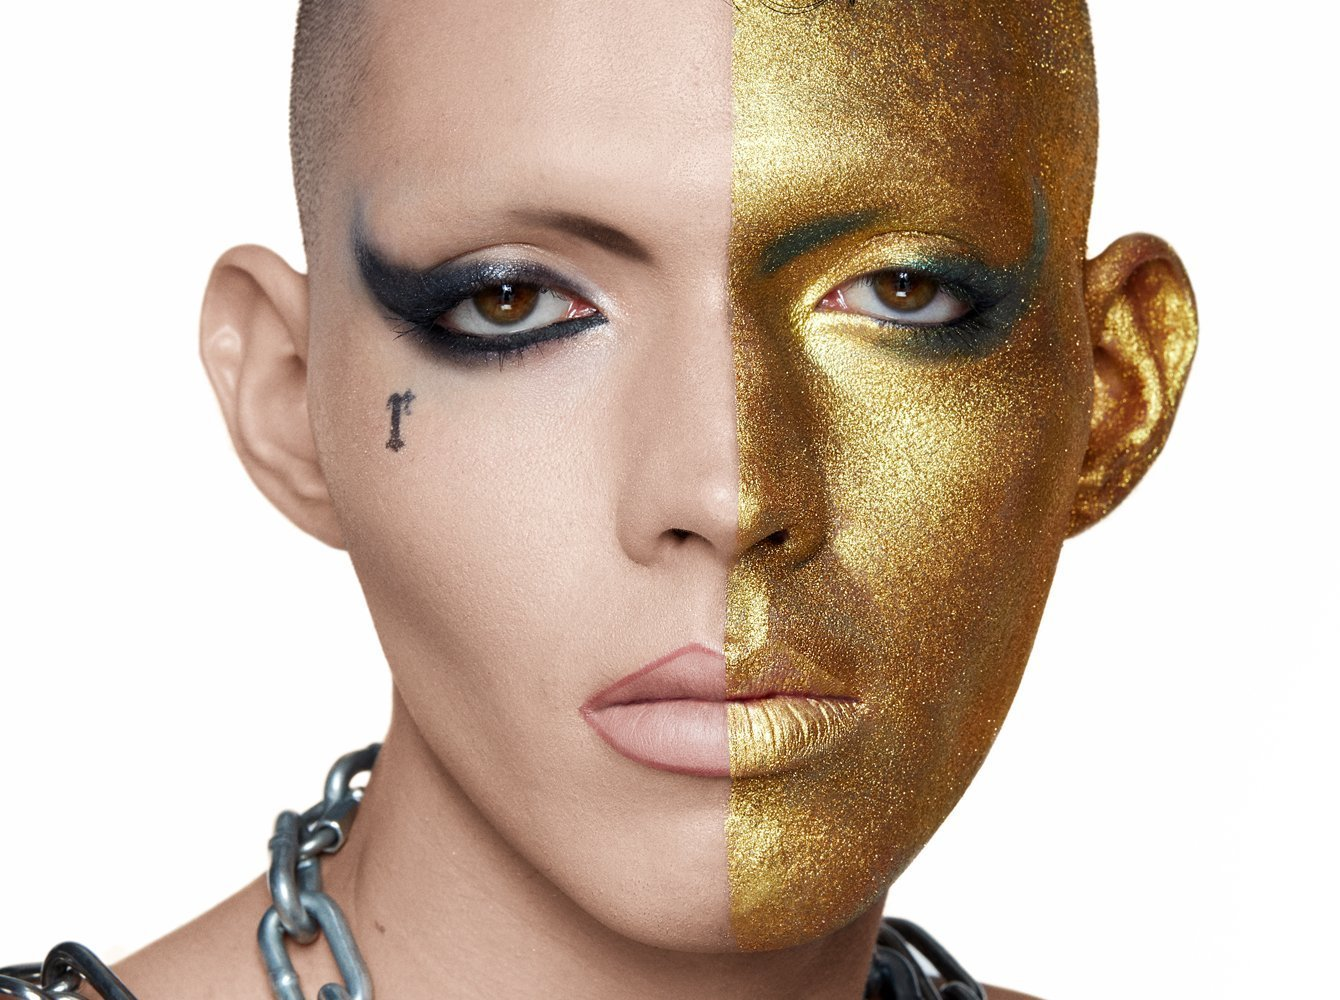 Attribution: [Fish, a black male model is wearing dramatic winged eyeliner on both eyes and half of his face is covered in gold eye shadow. He is looking solemnly at the camera.] Via Haus Labs.